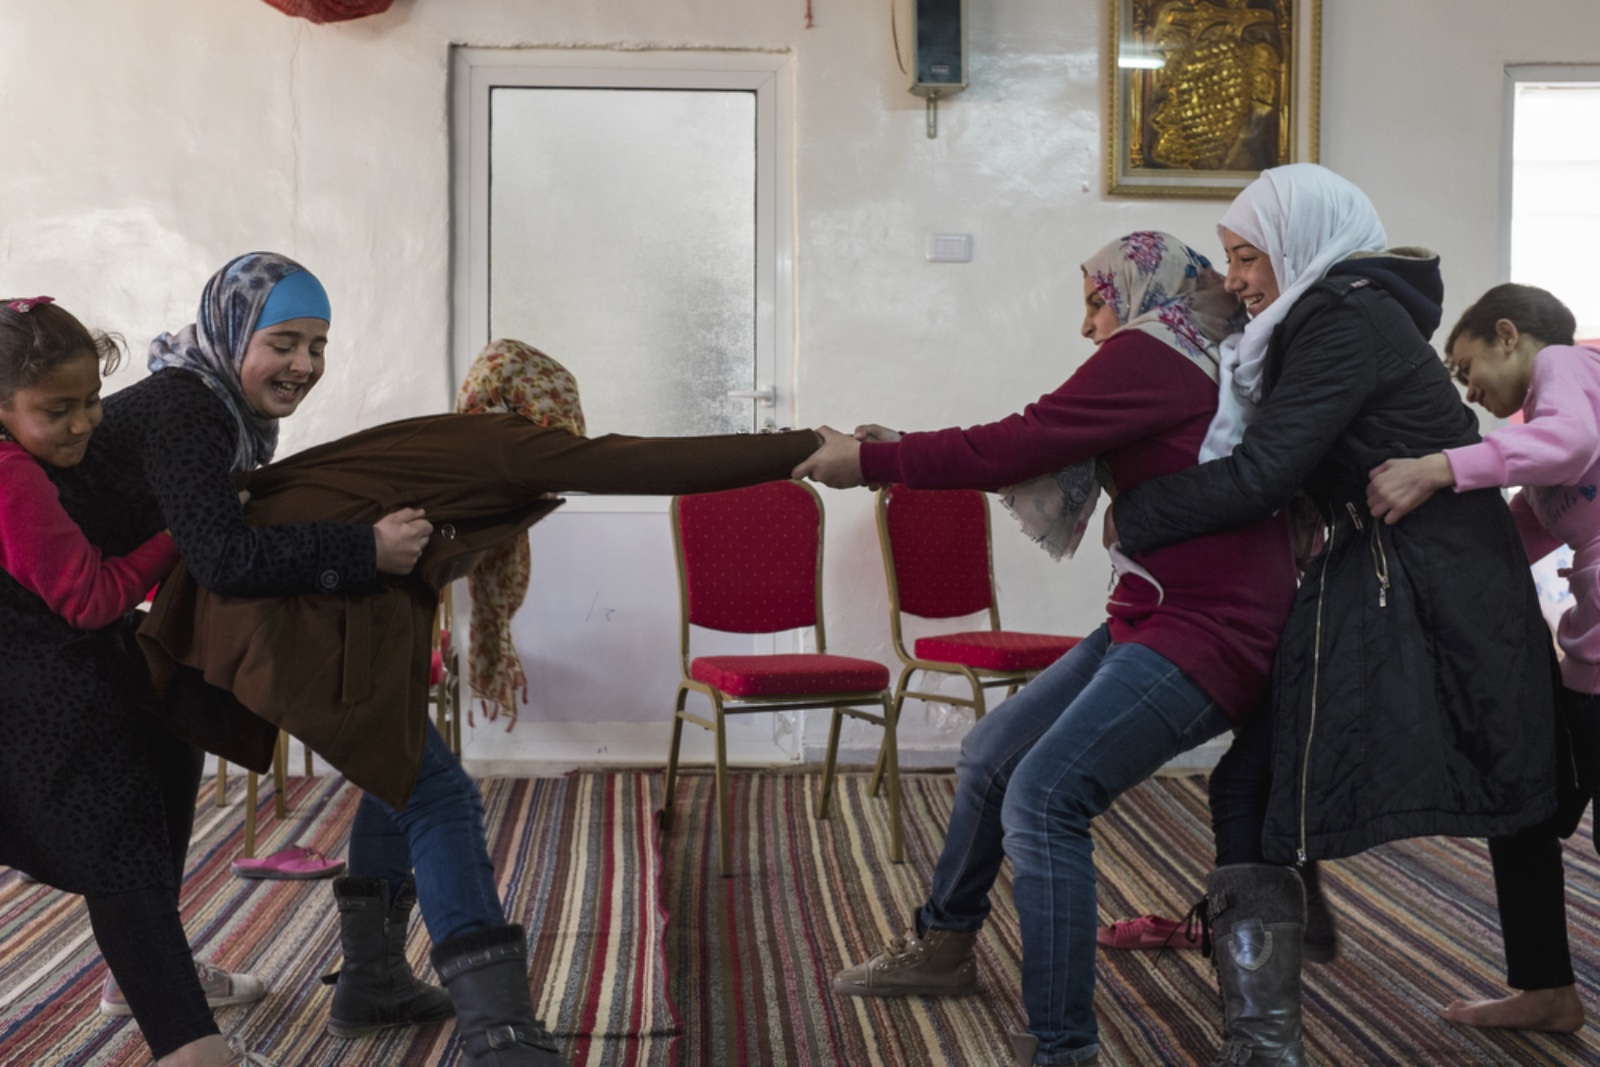 Young girls played in the community center room of Dar Al-Ihsan For Orphans on January 16, 2016. (Christopher Lee/GroundTruth)